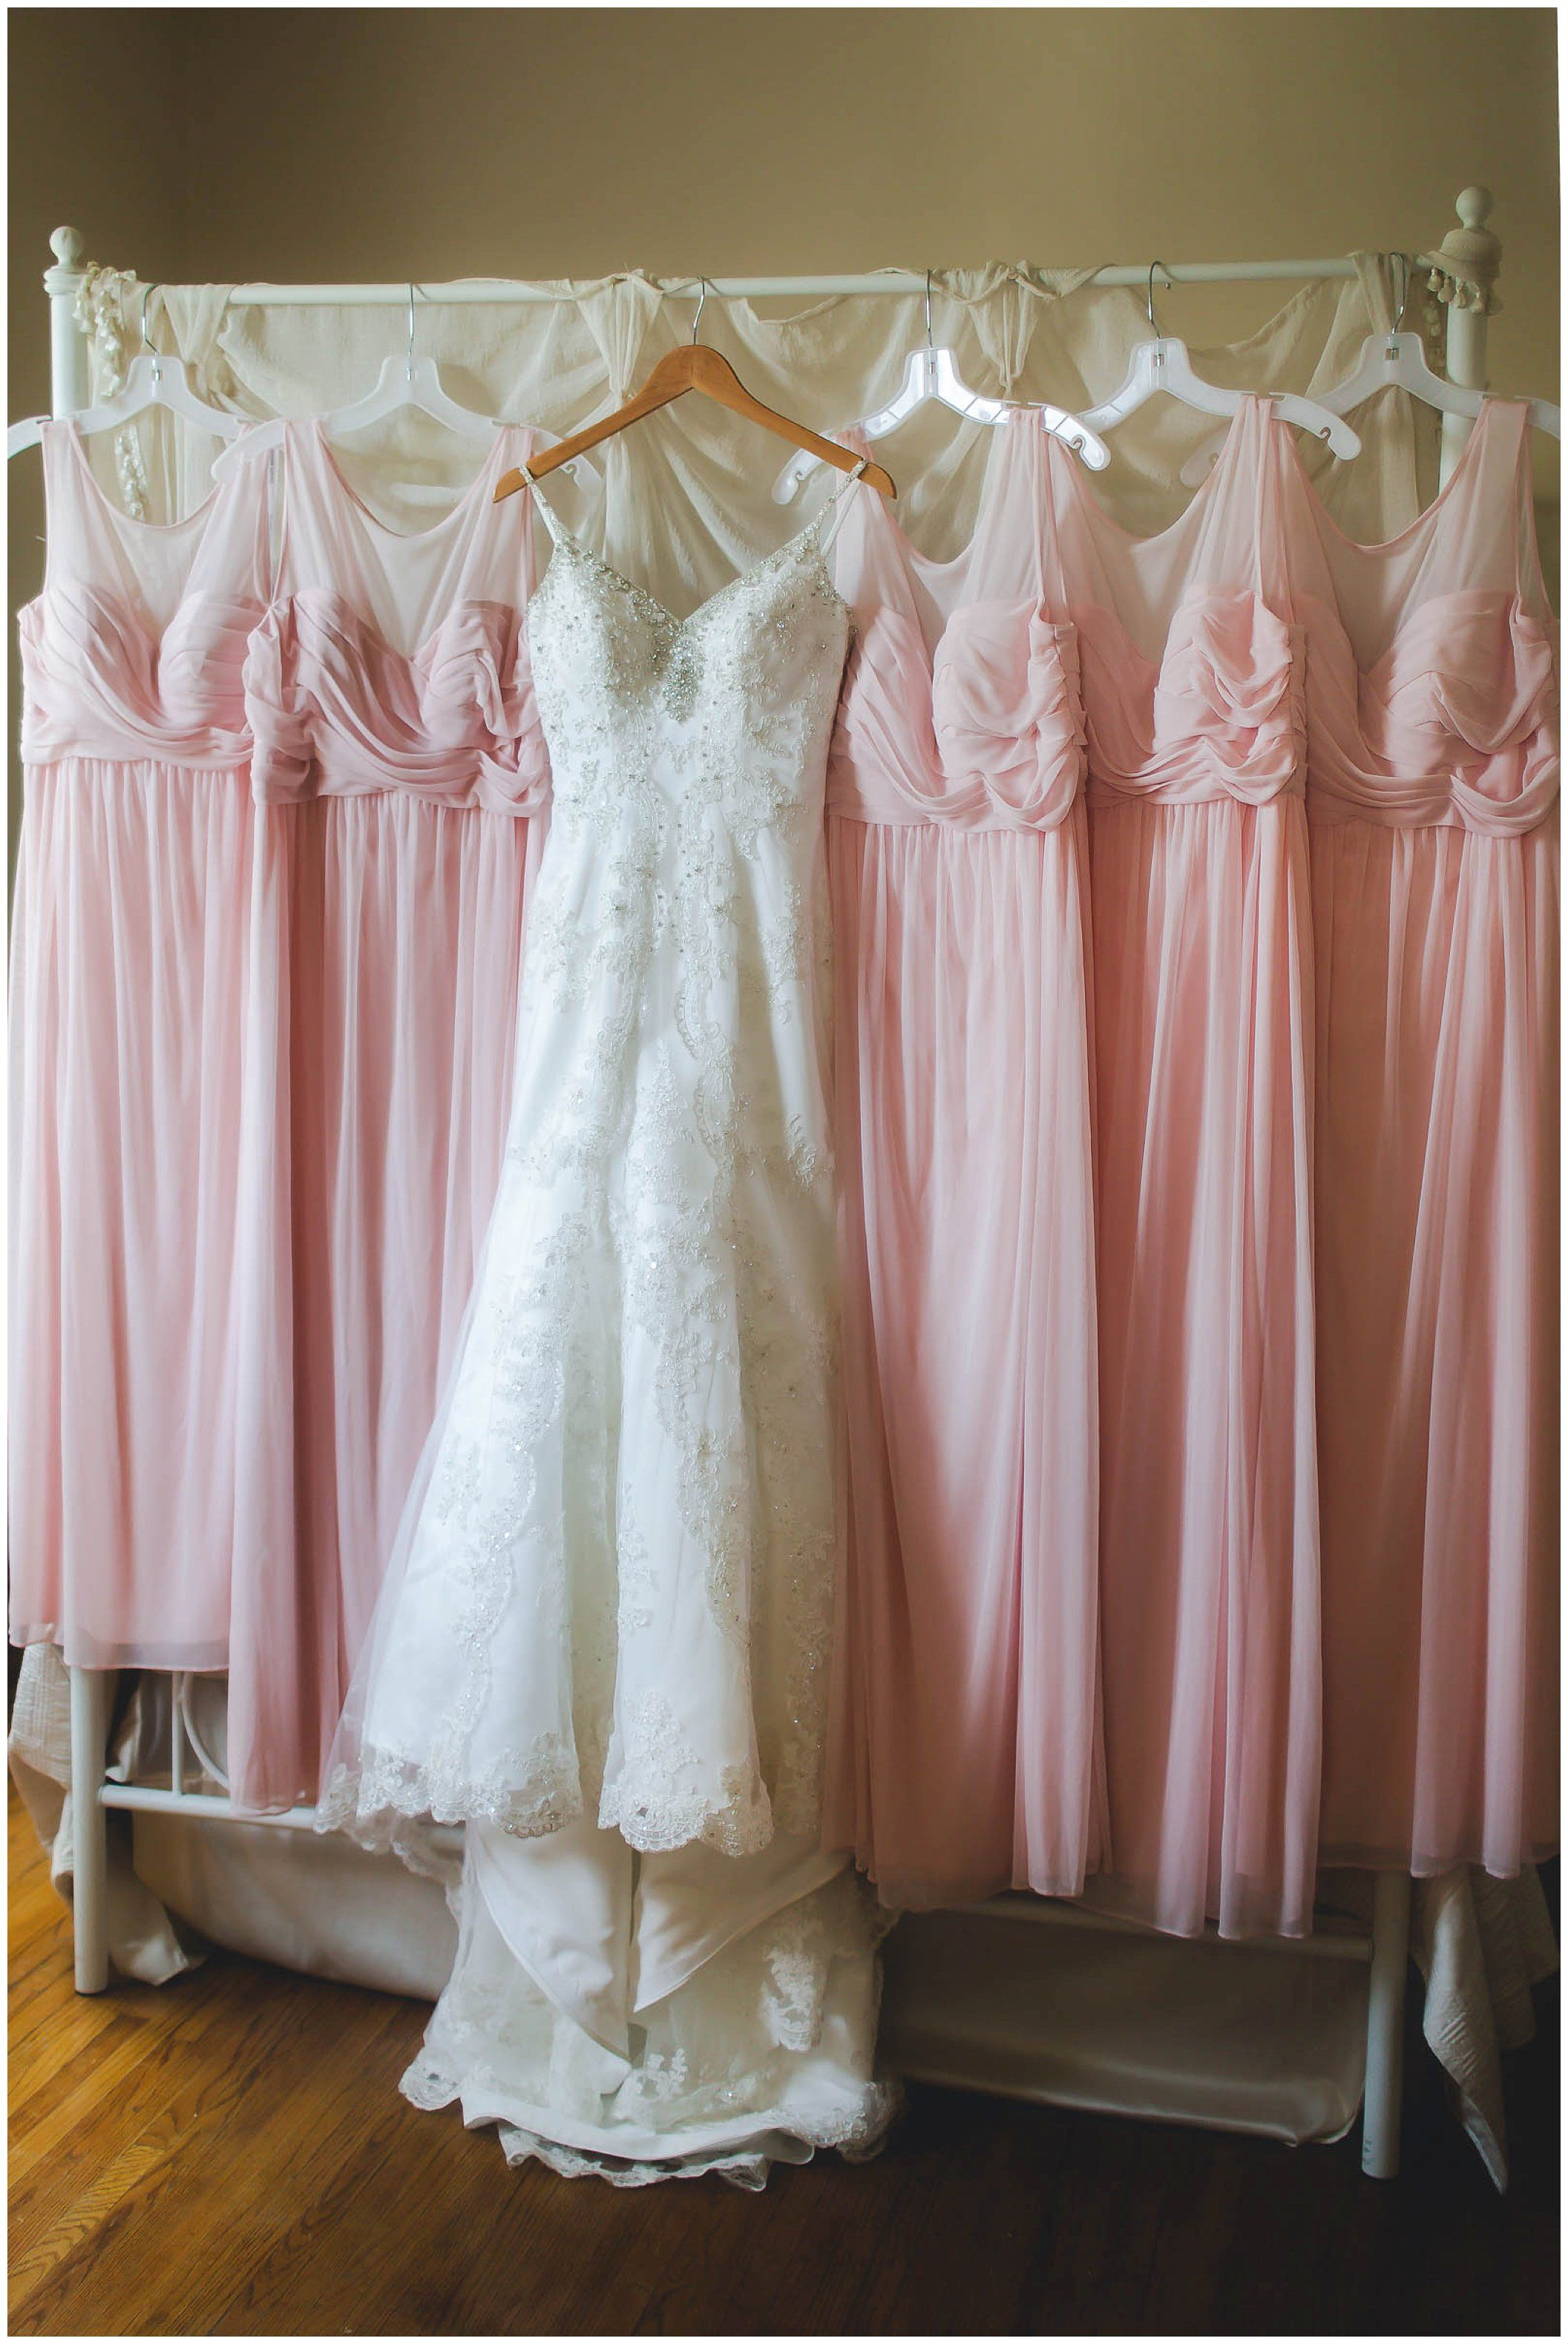 85711fe62dc Stunning wedding dress for an elegant pink wedding! Wedding dressing  handing with stunning pink bridesmaid dresses!